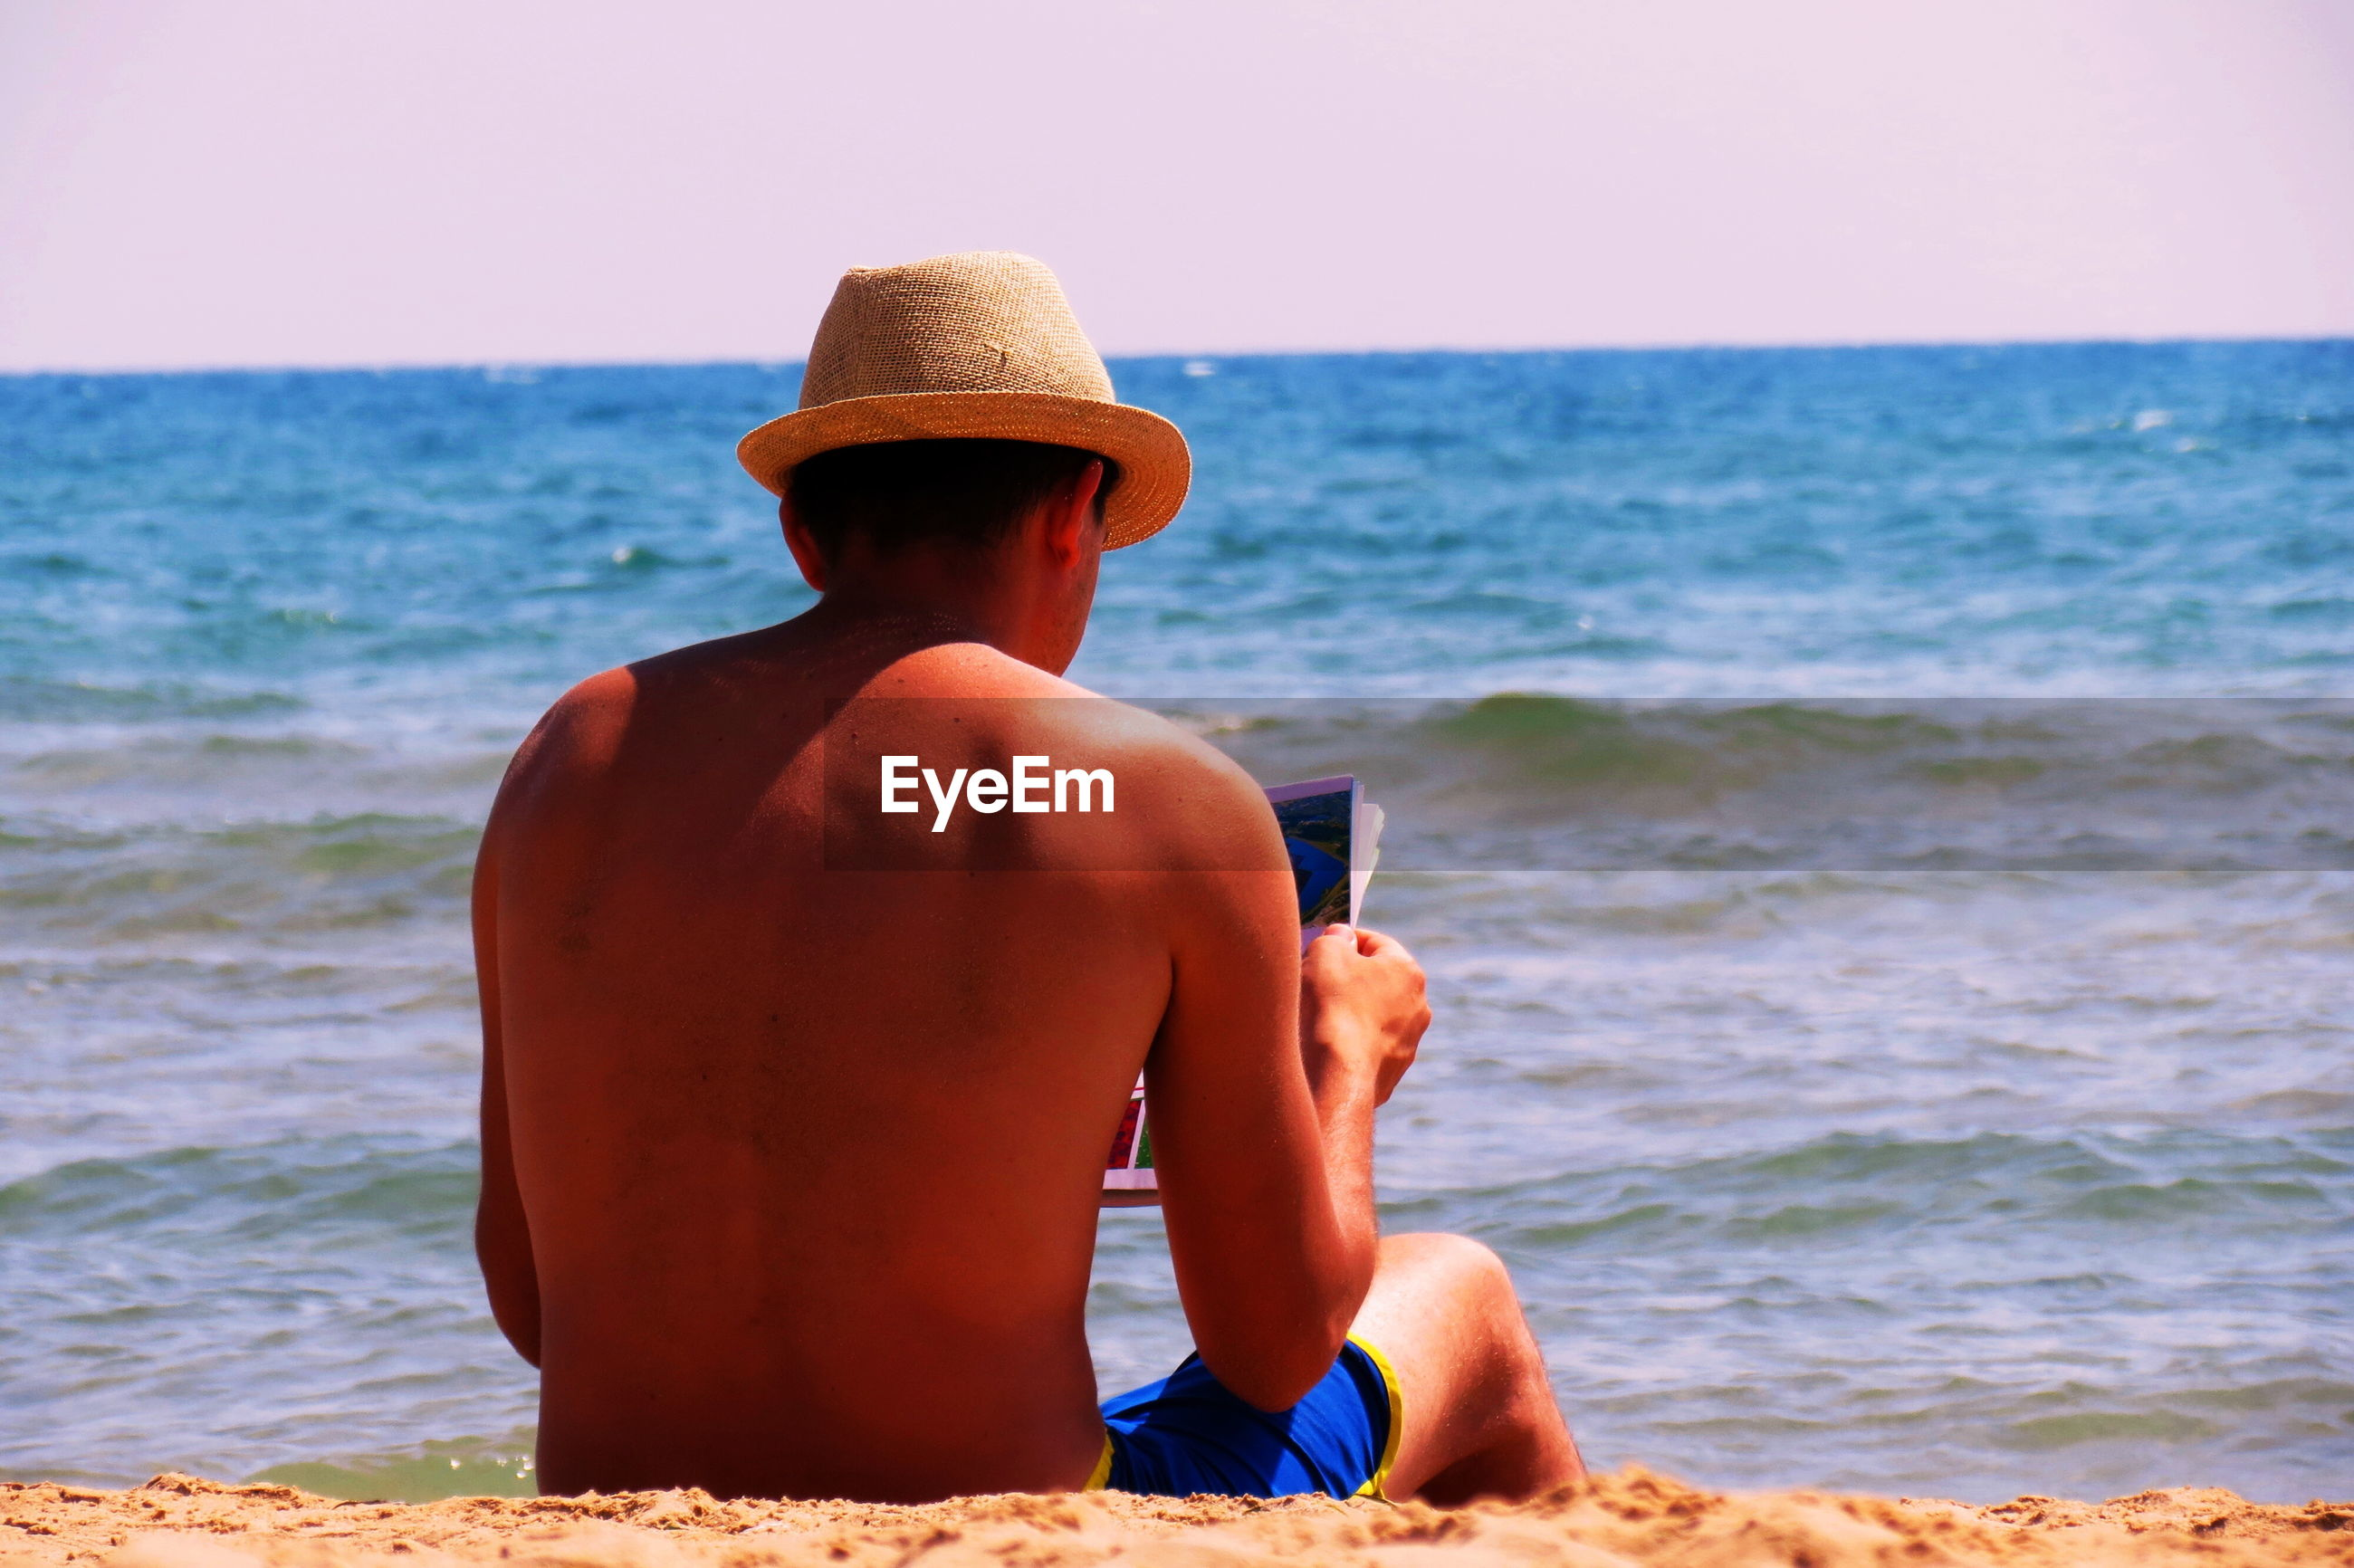 Rear view of shirtless man with magazine while relaxing on shore at beach